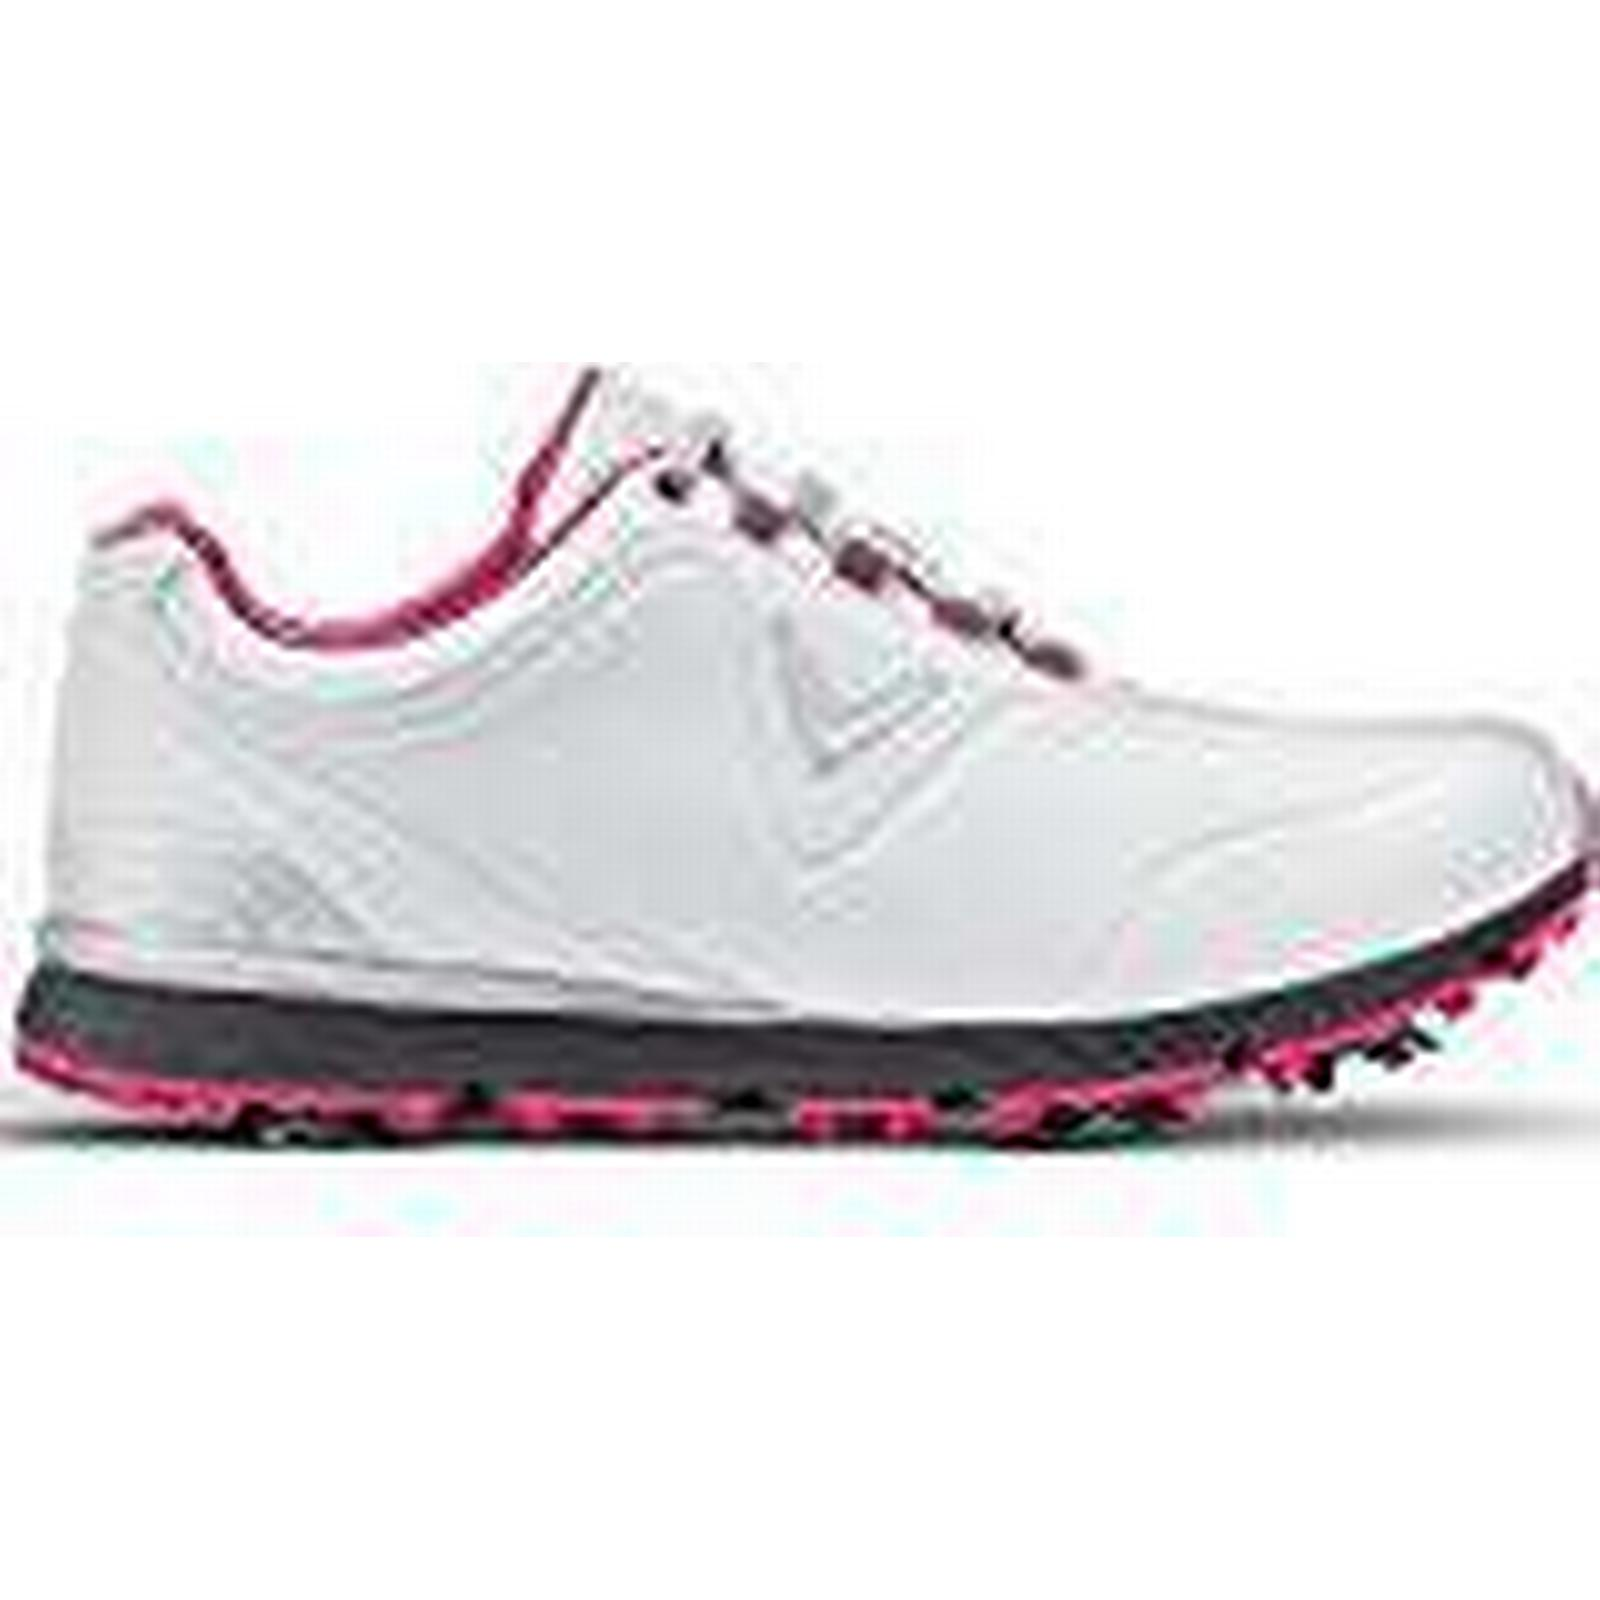 Callaway Women''s Lady 4.5 Mulligan Golf Shoes, (White/Pink), 4.5 Lady UK 4.5 UK 001209